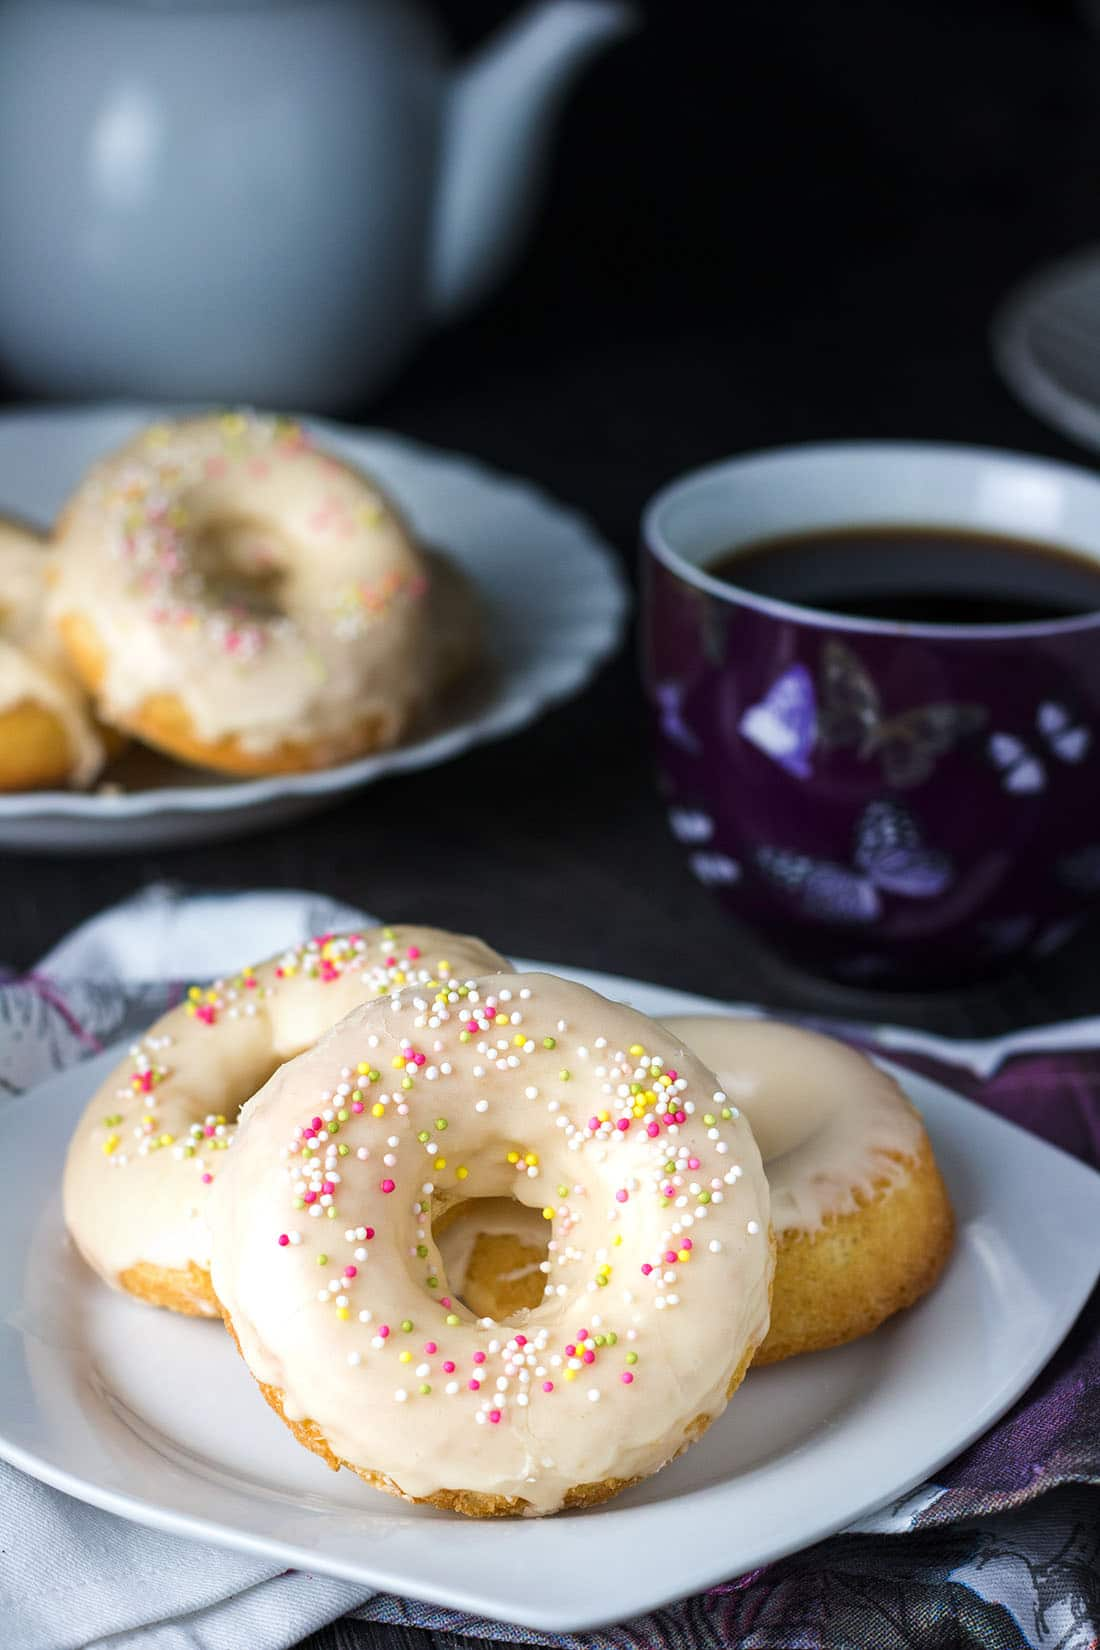 Easy Baked Iced Vanilla Doughnuts on a plate with the rest on a platter in the background an a mug full of coffee next to the plate.